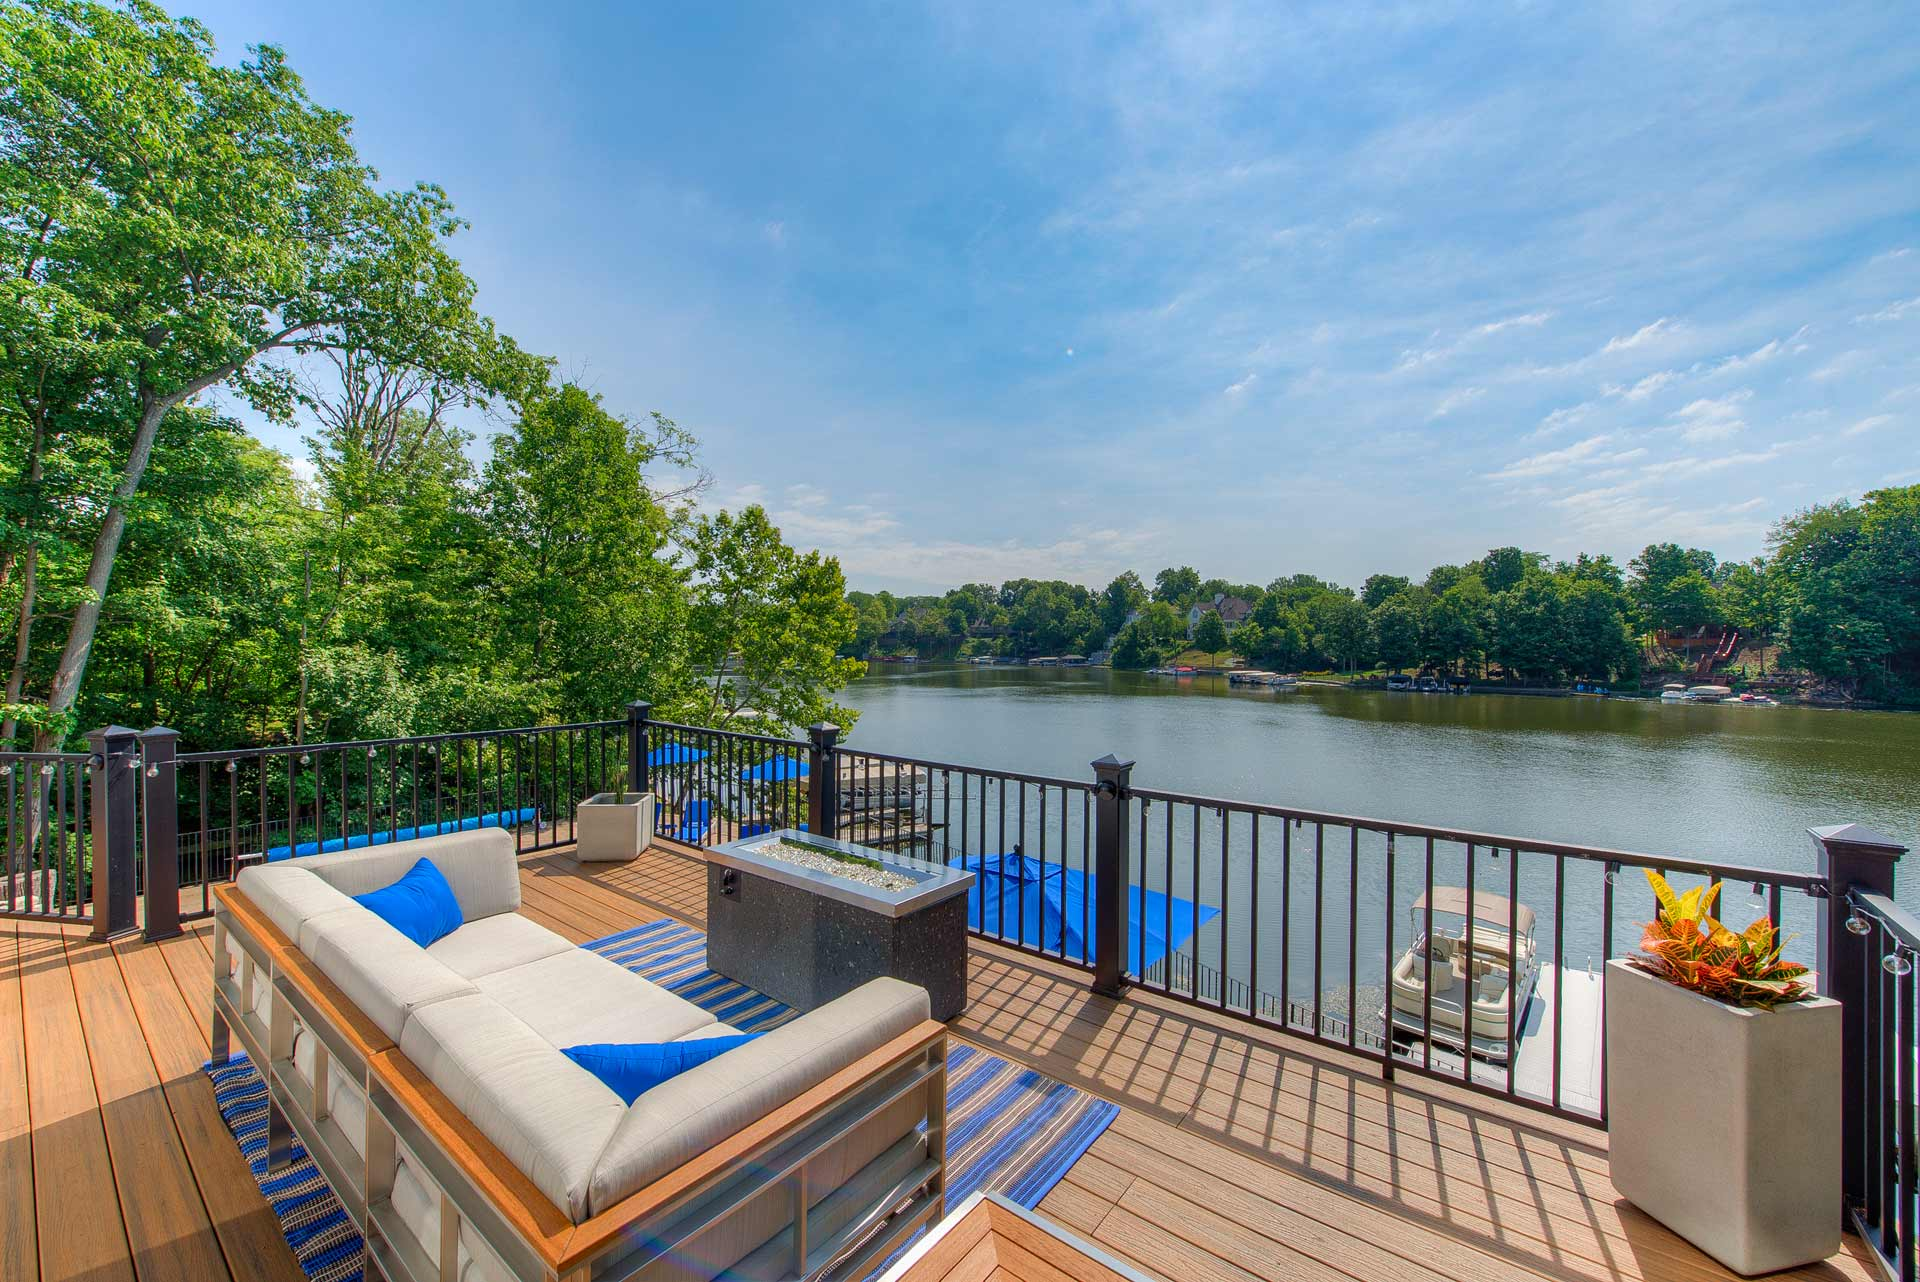 Pool Deck has been enhanced with new railings and composite decking overlooking Geist Reservoir - Reef Court Light Renovation - Geist Reservoir - Indianapolis, IN - Photo by Structured Photography